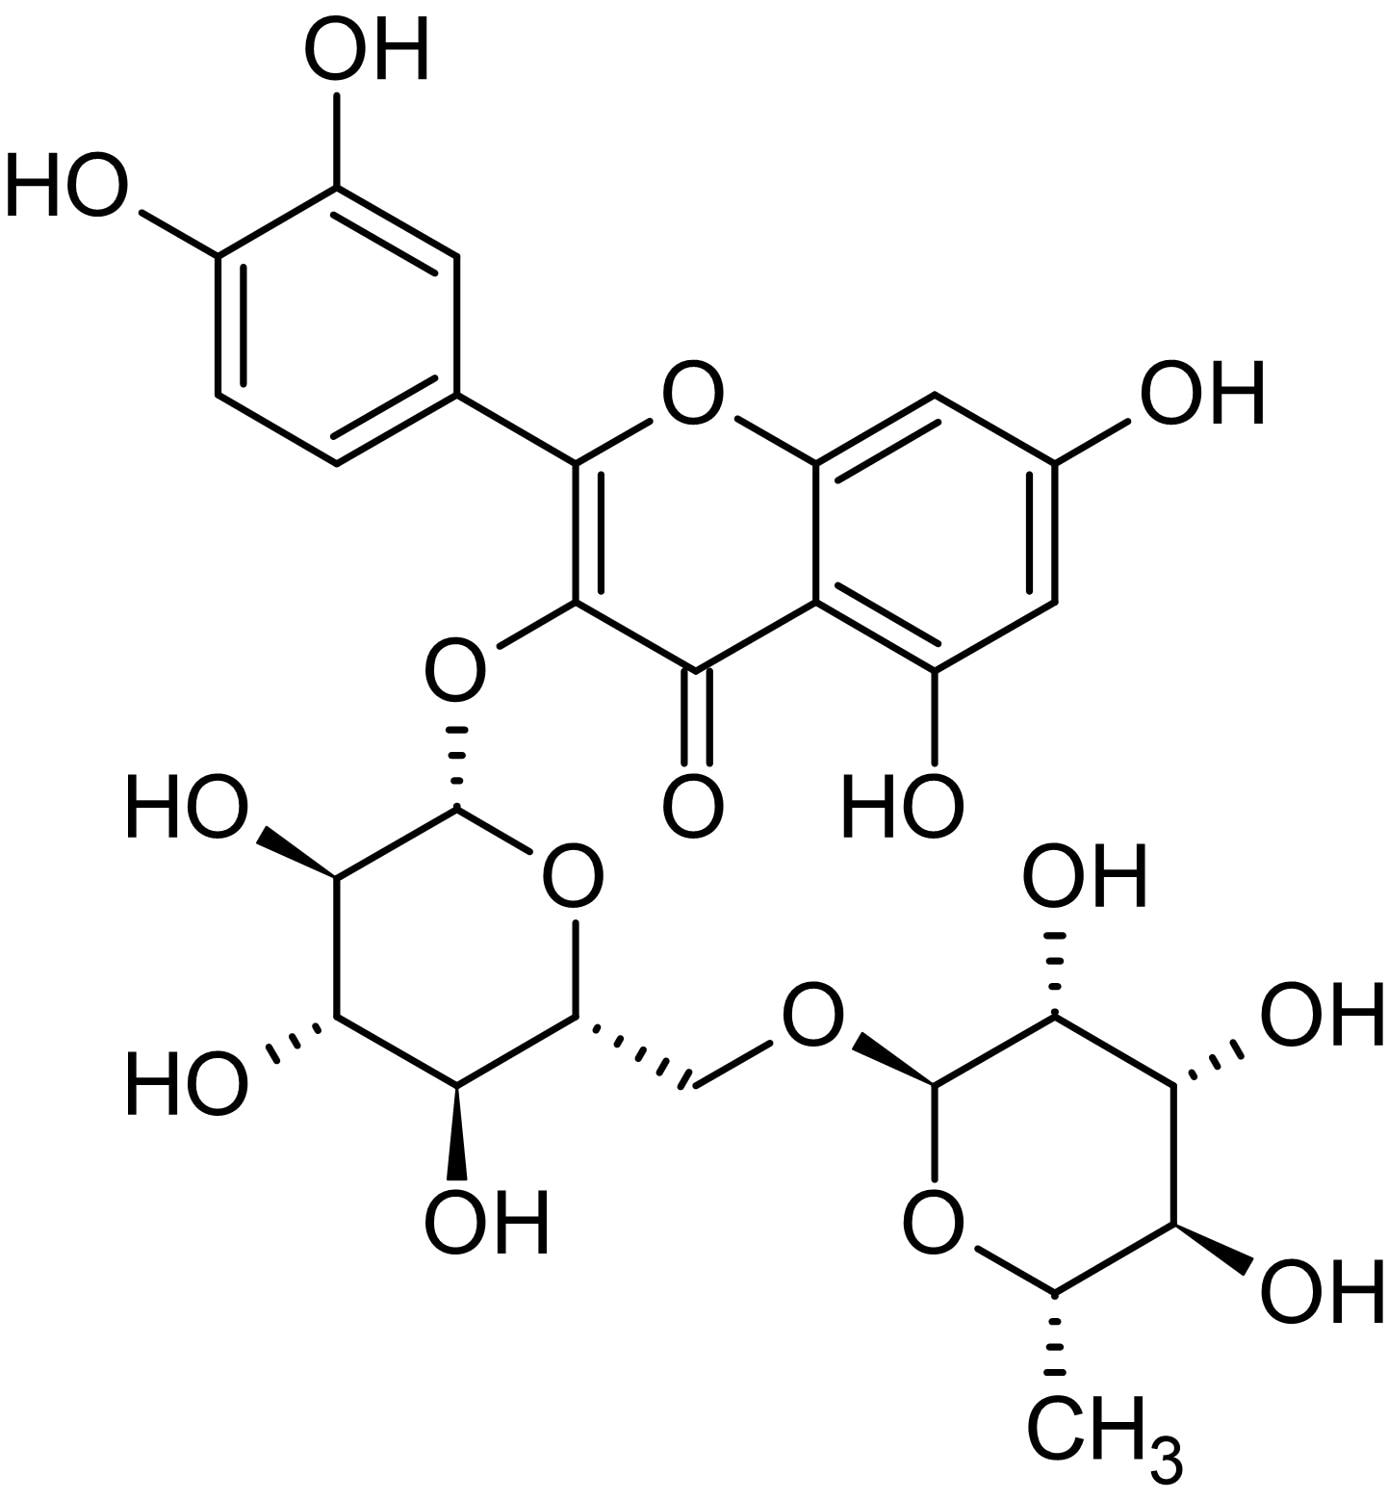 Chemical Structure - Rutin, Antioxidant and NO scavenger (ab142586)